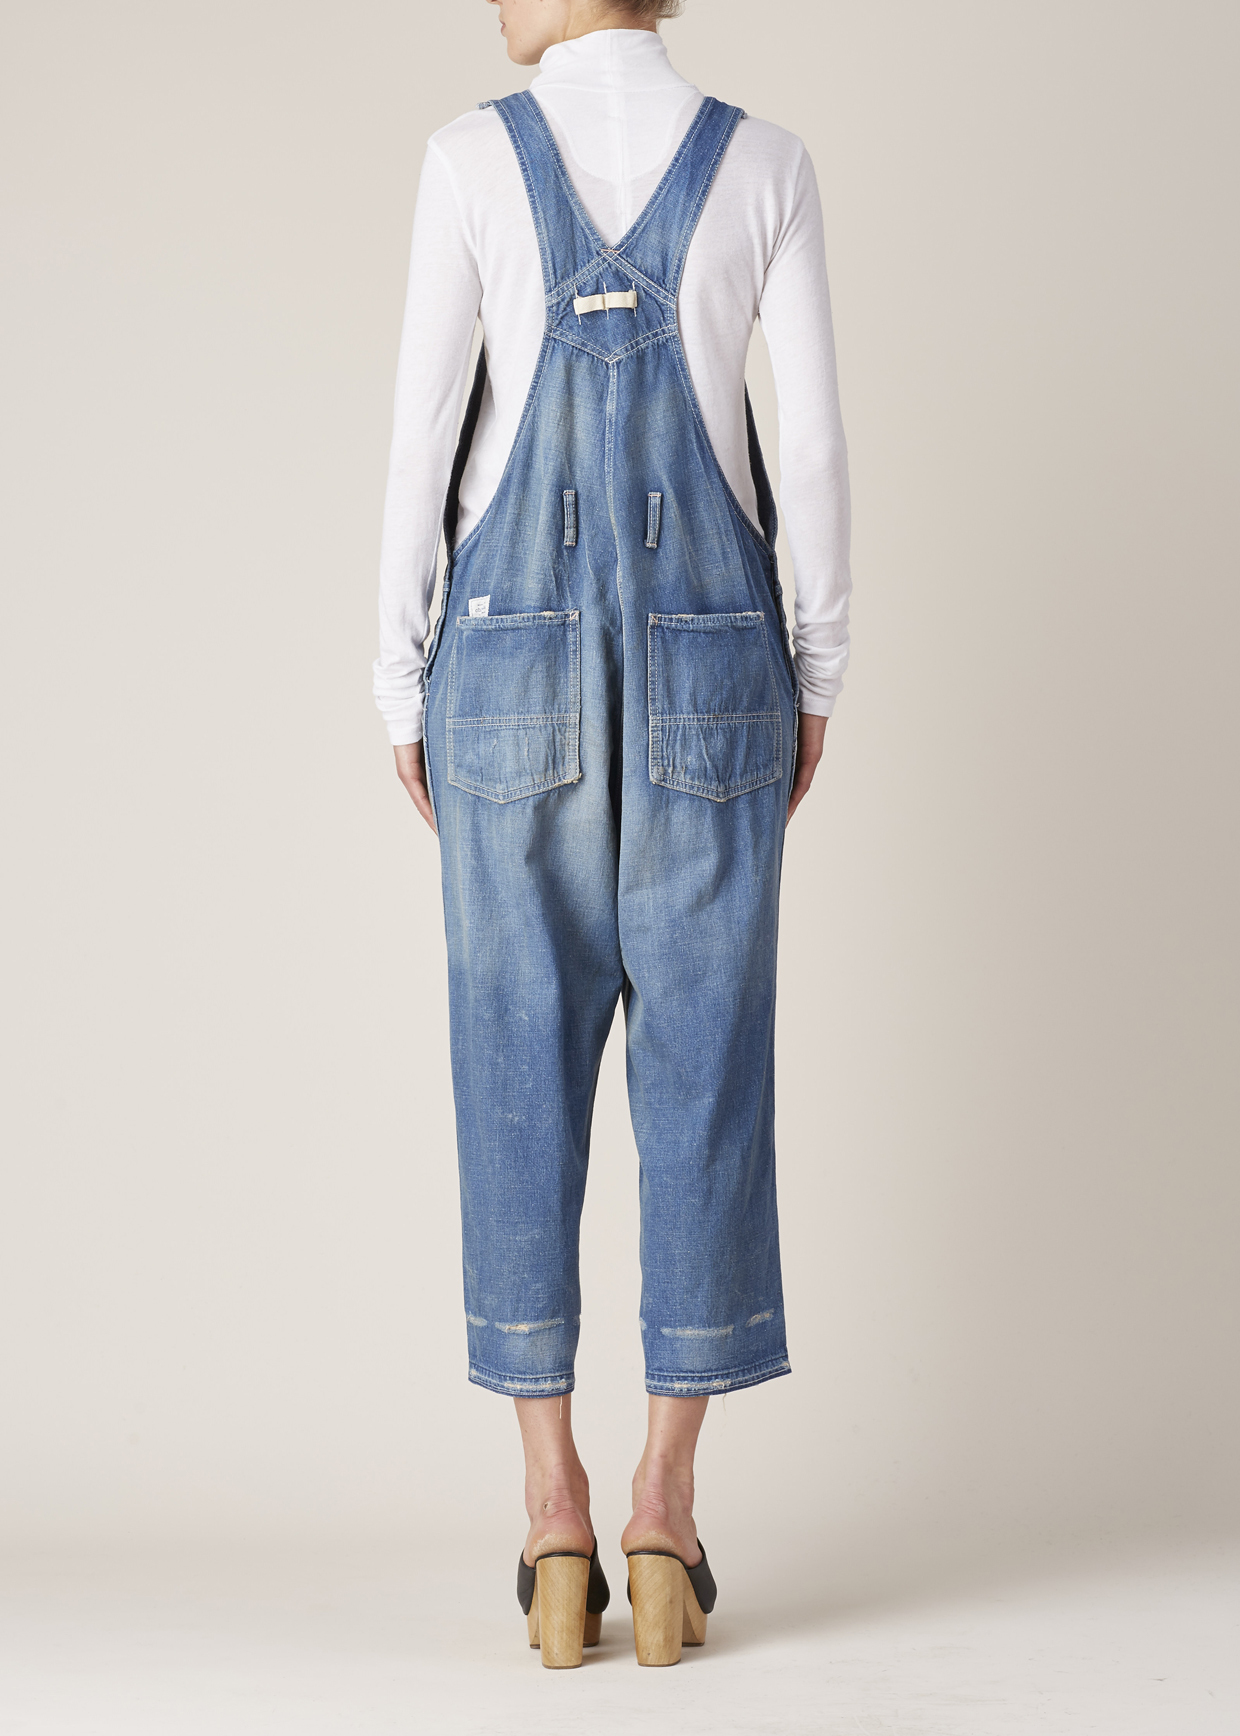 Lyst Chimala Vintage Old Denim Overall In Blue